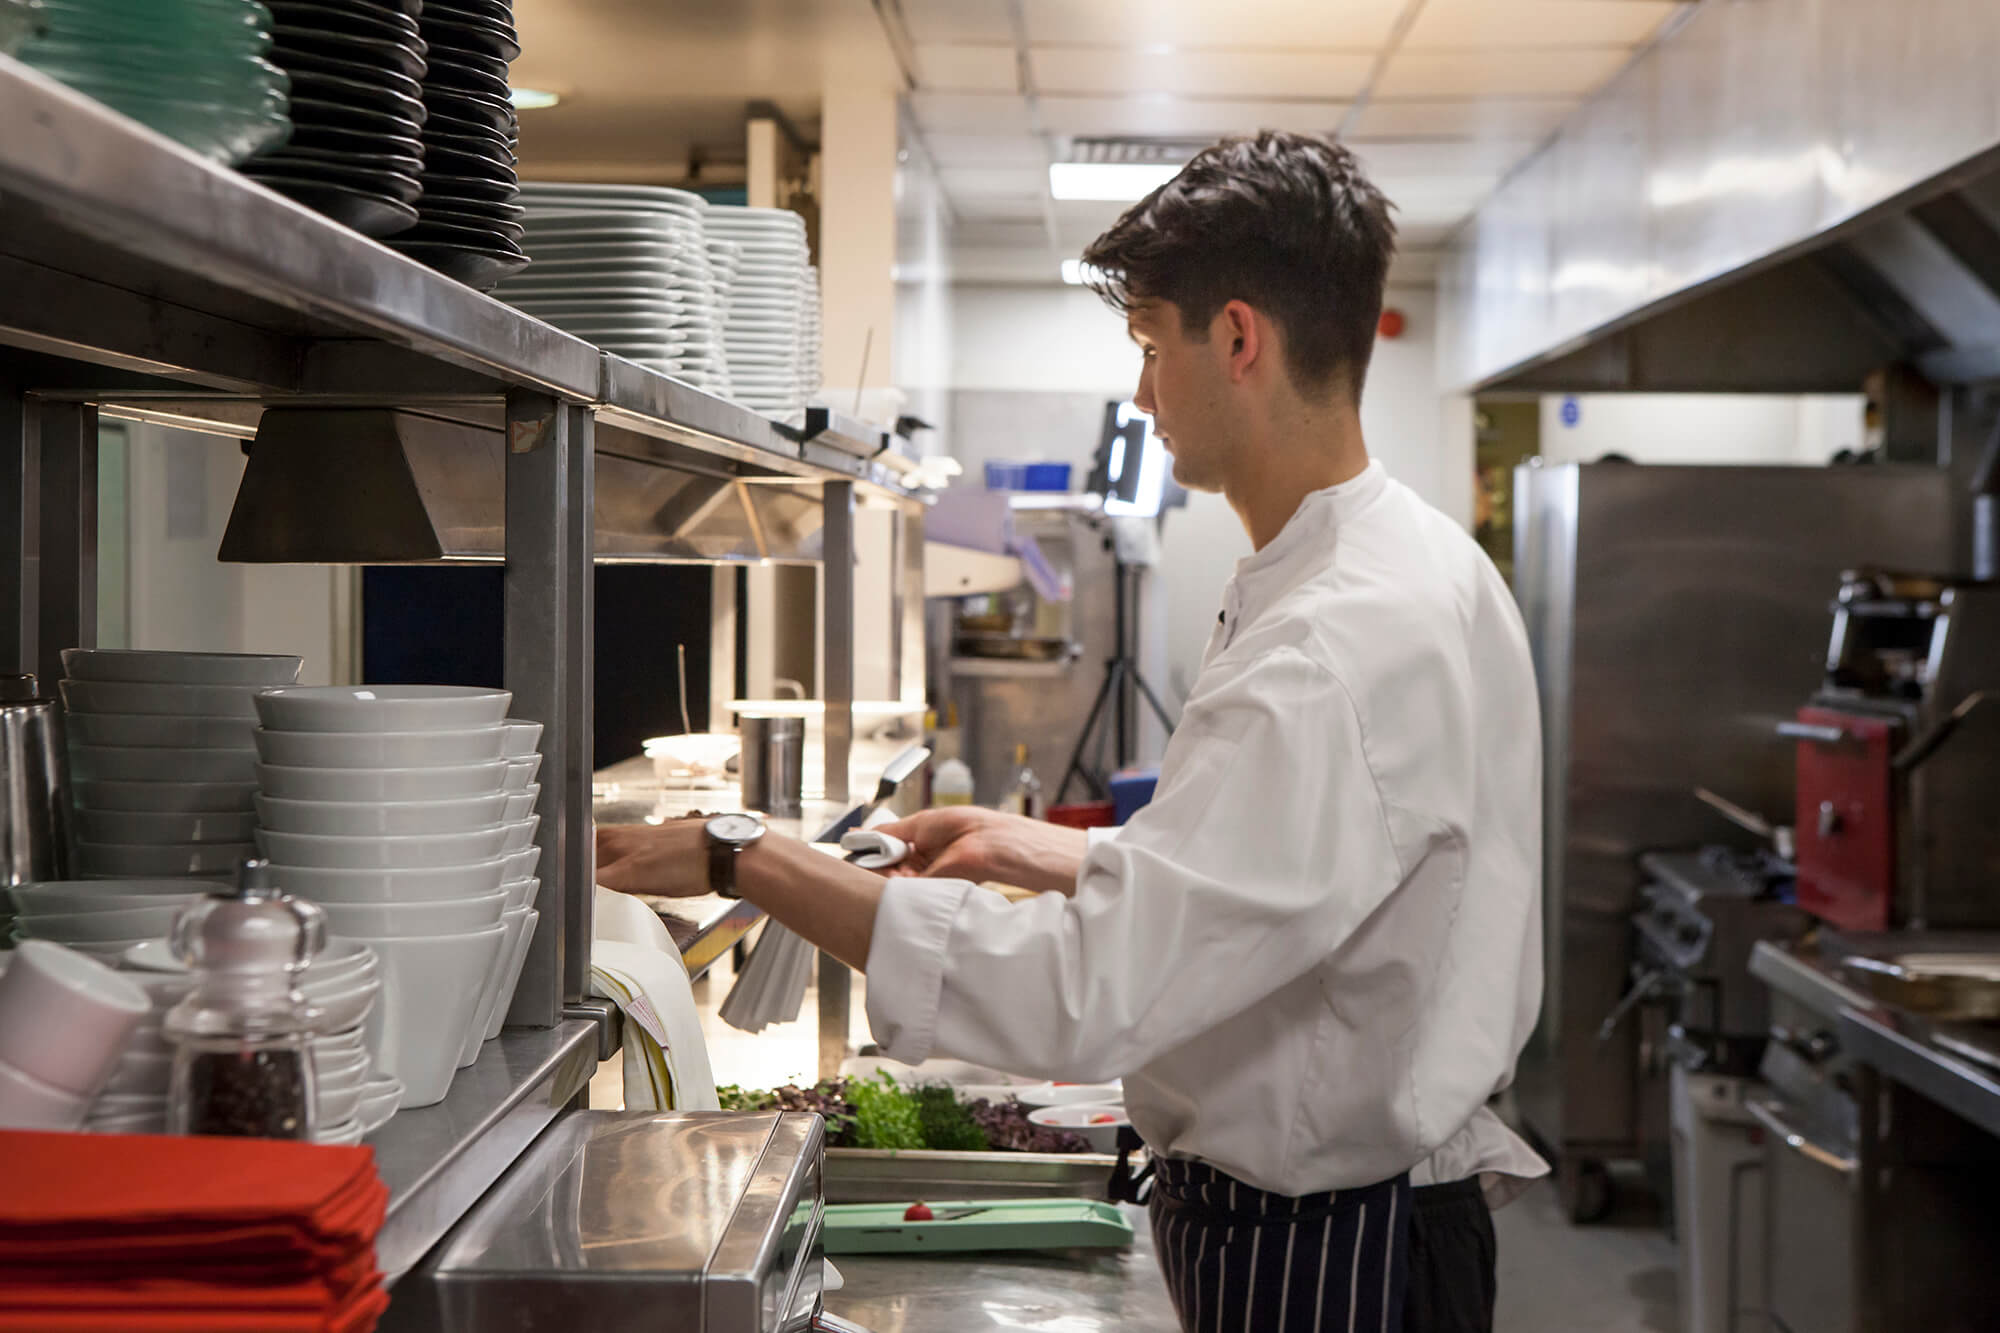 Joe Posnett works in the kitchen at Apex Hotels